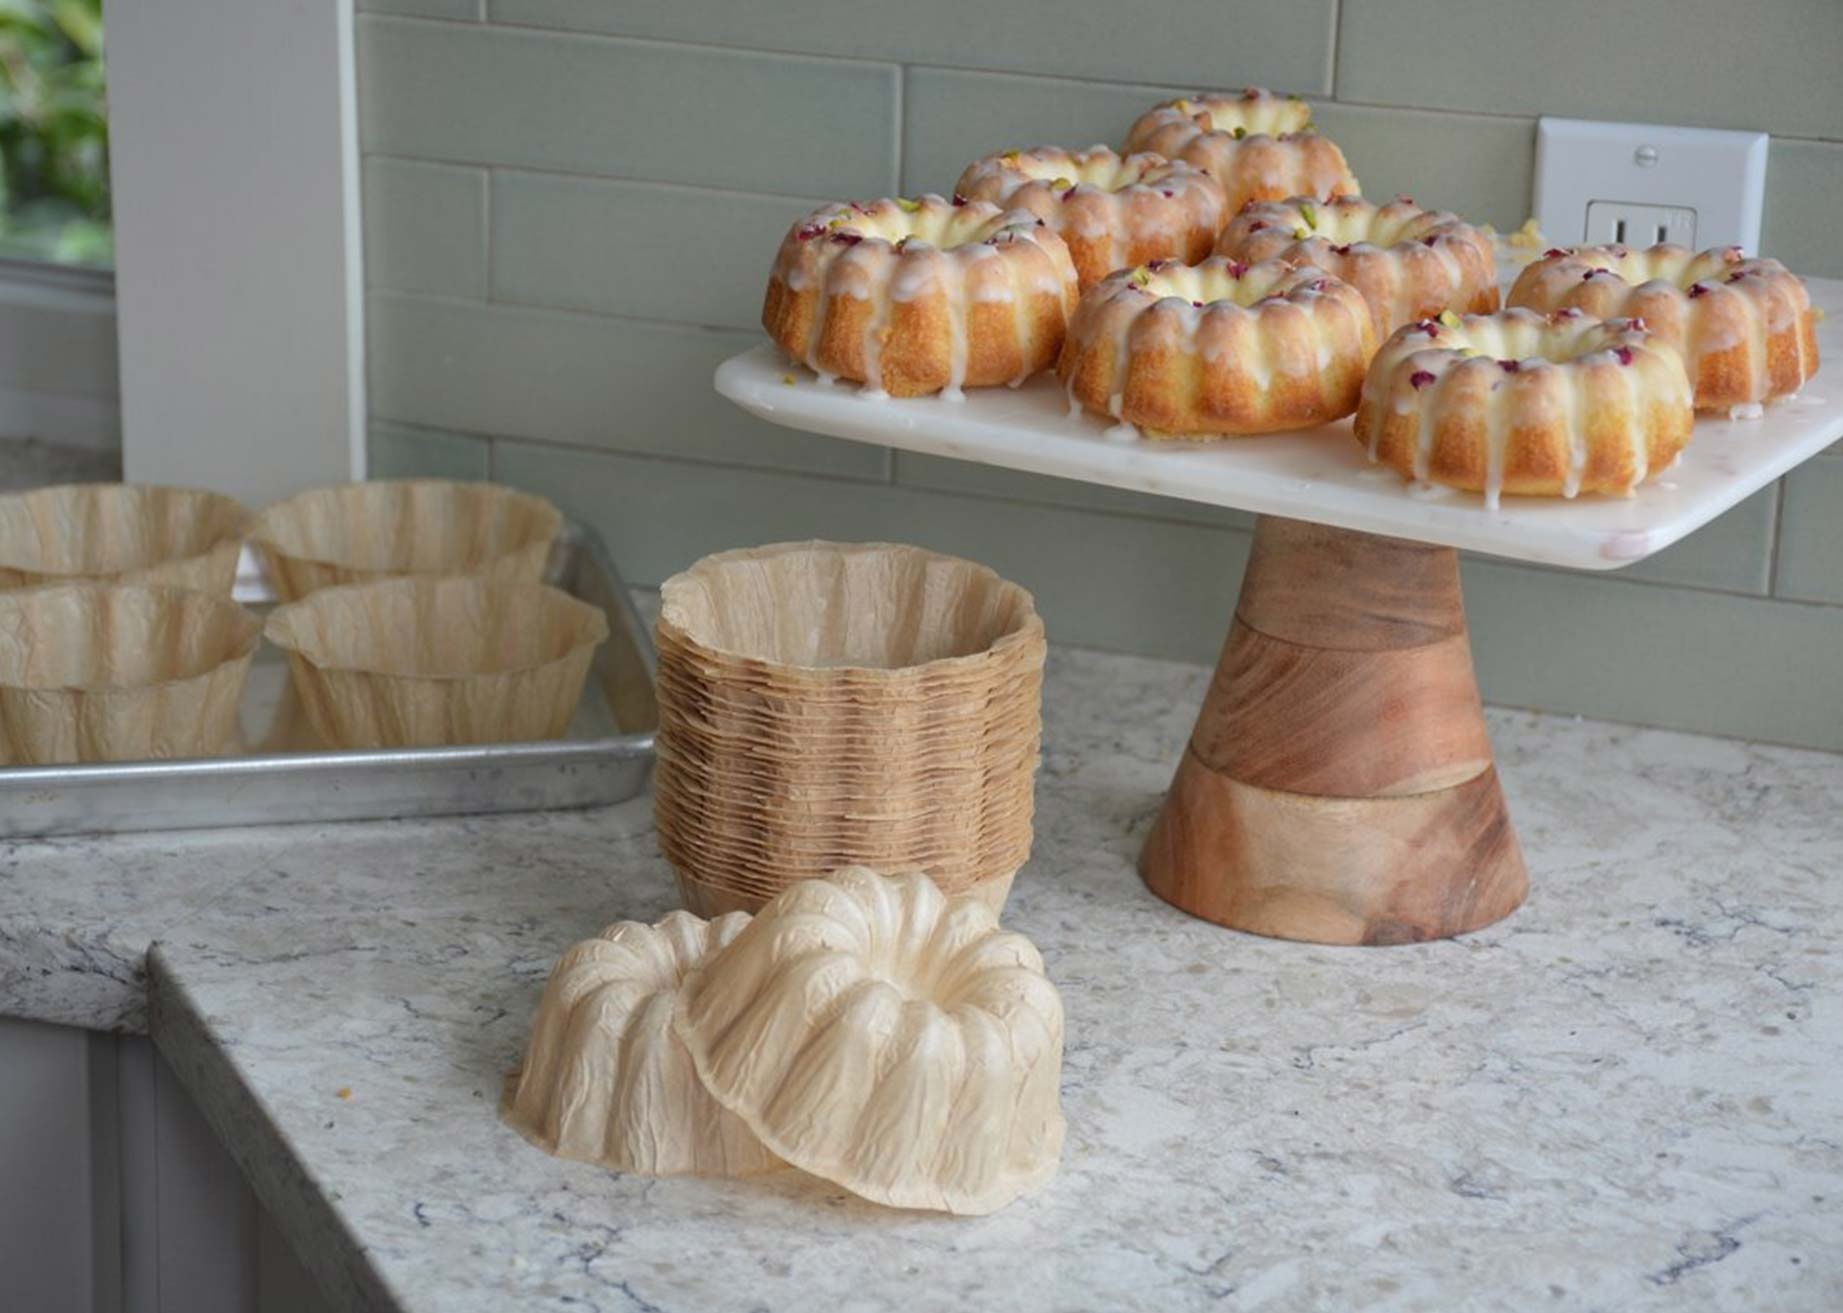 Novacart Bundt Cakes and baking molds